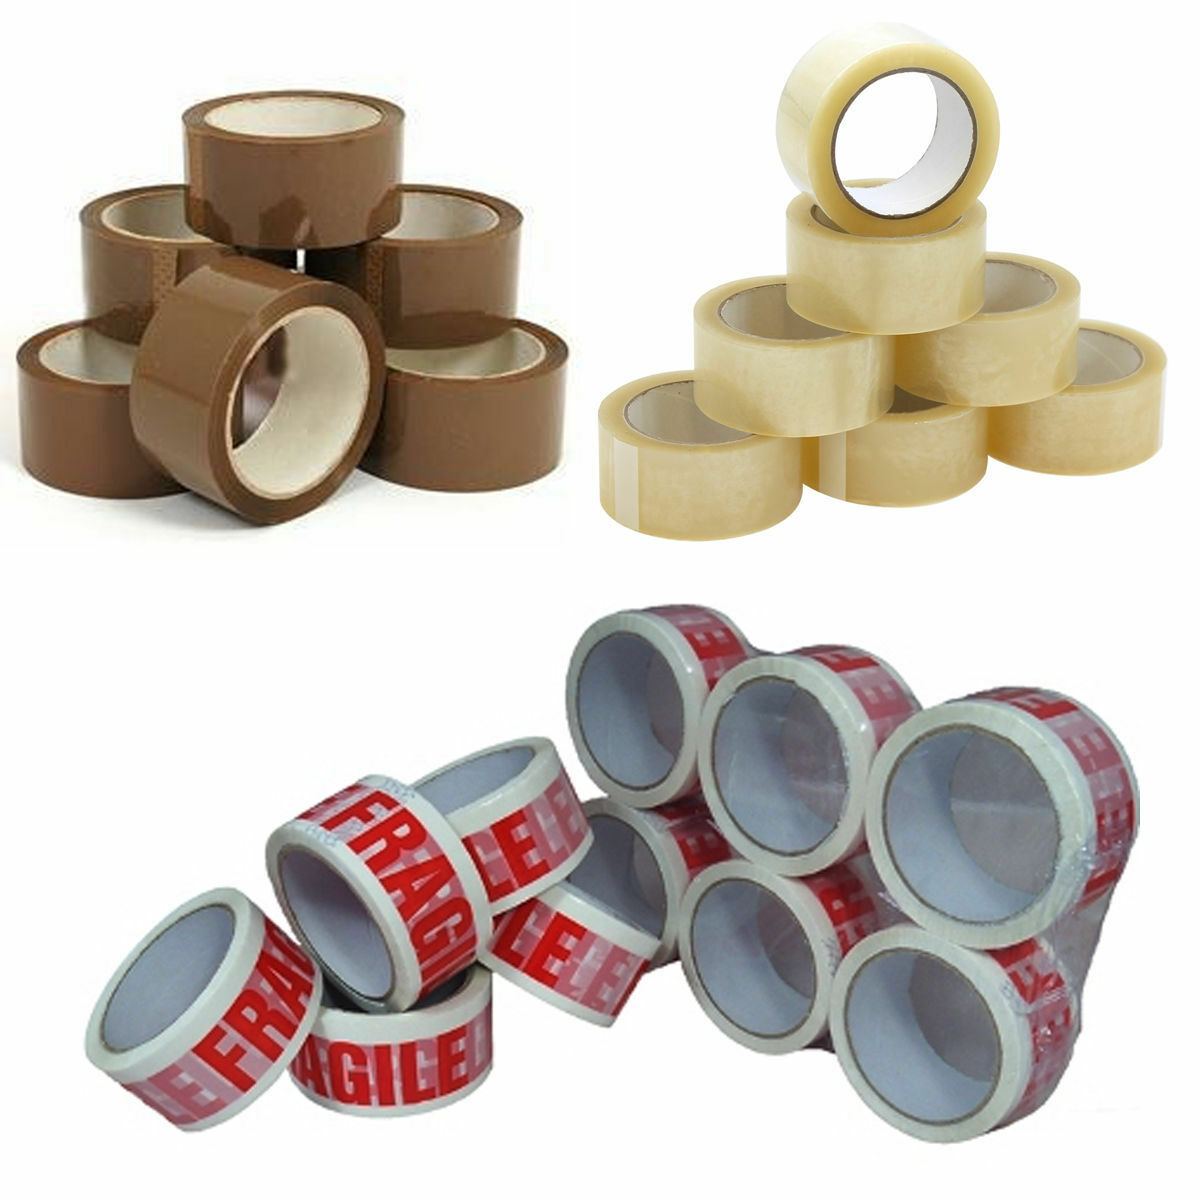 Multi-Purpose Strong Packing Packaging Tape Heavy Duty Packaging Tape for Parcels and Boxes Clear Transparent Tape Sealing Tape 48mm Clear Packaging Tape for Sealing Parcels and Moving Boxes